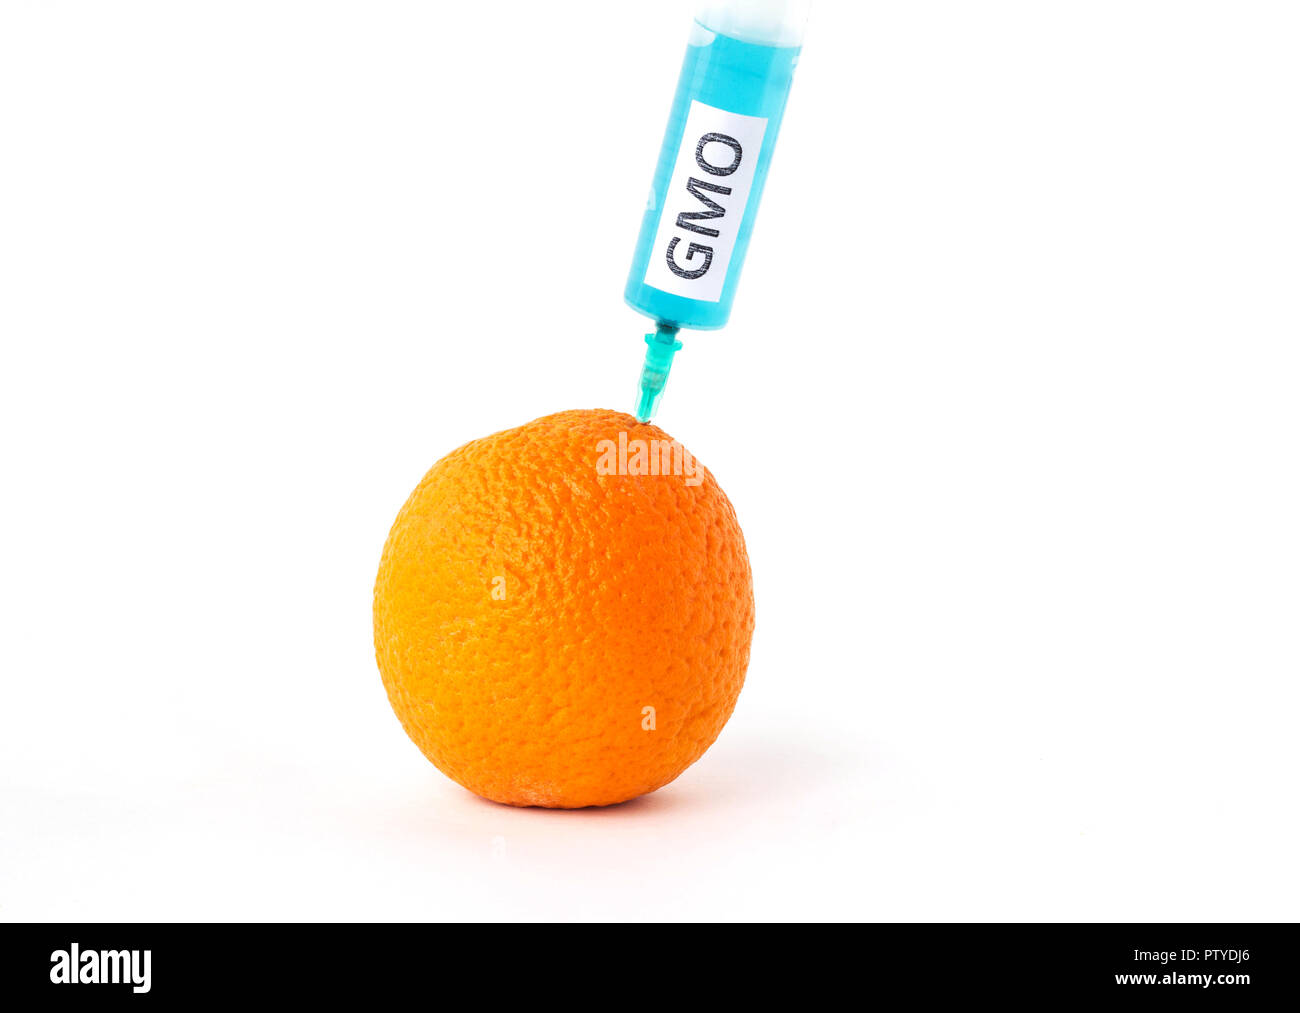 Orange on a white background in which enter gmo and nitrates, close-up, genetically modified organism, orange - Stock Image